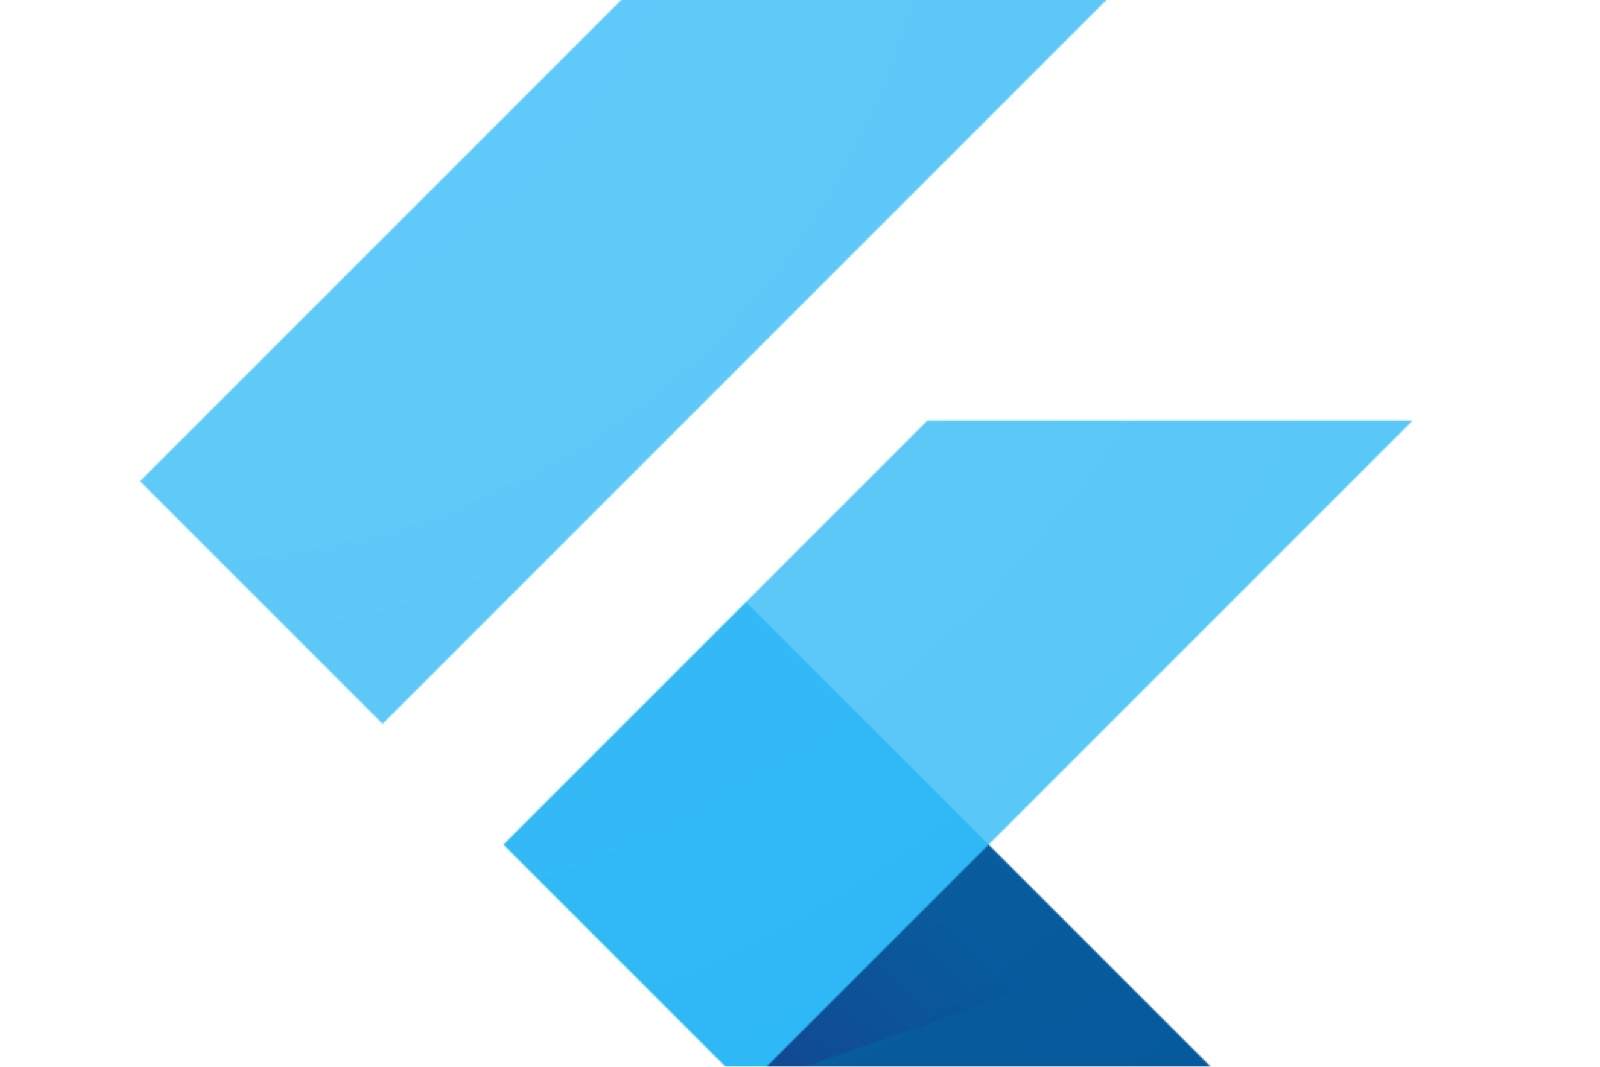 the Leader in flutter development - We built the first ever app using Flutter in 2017 and have been on the bleeding edge ever since.